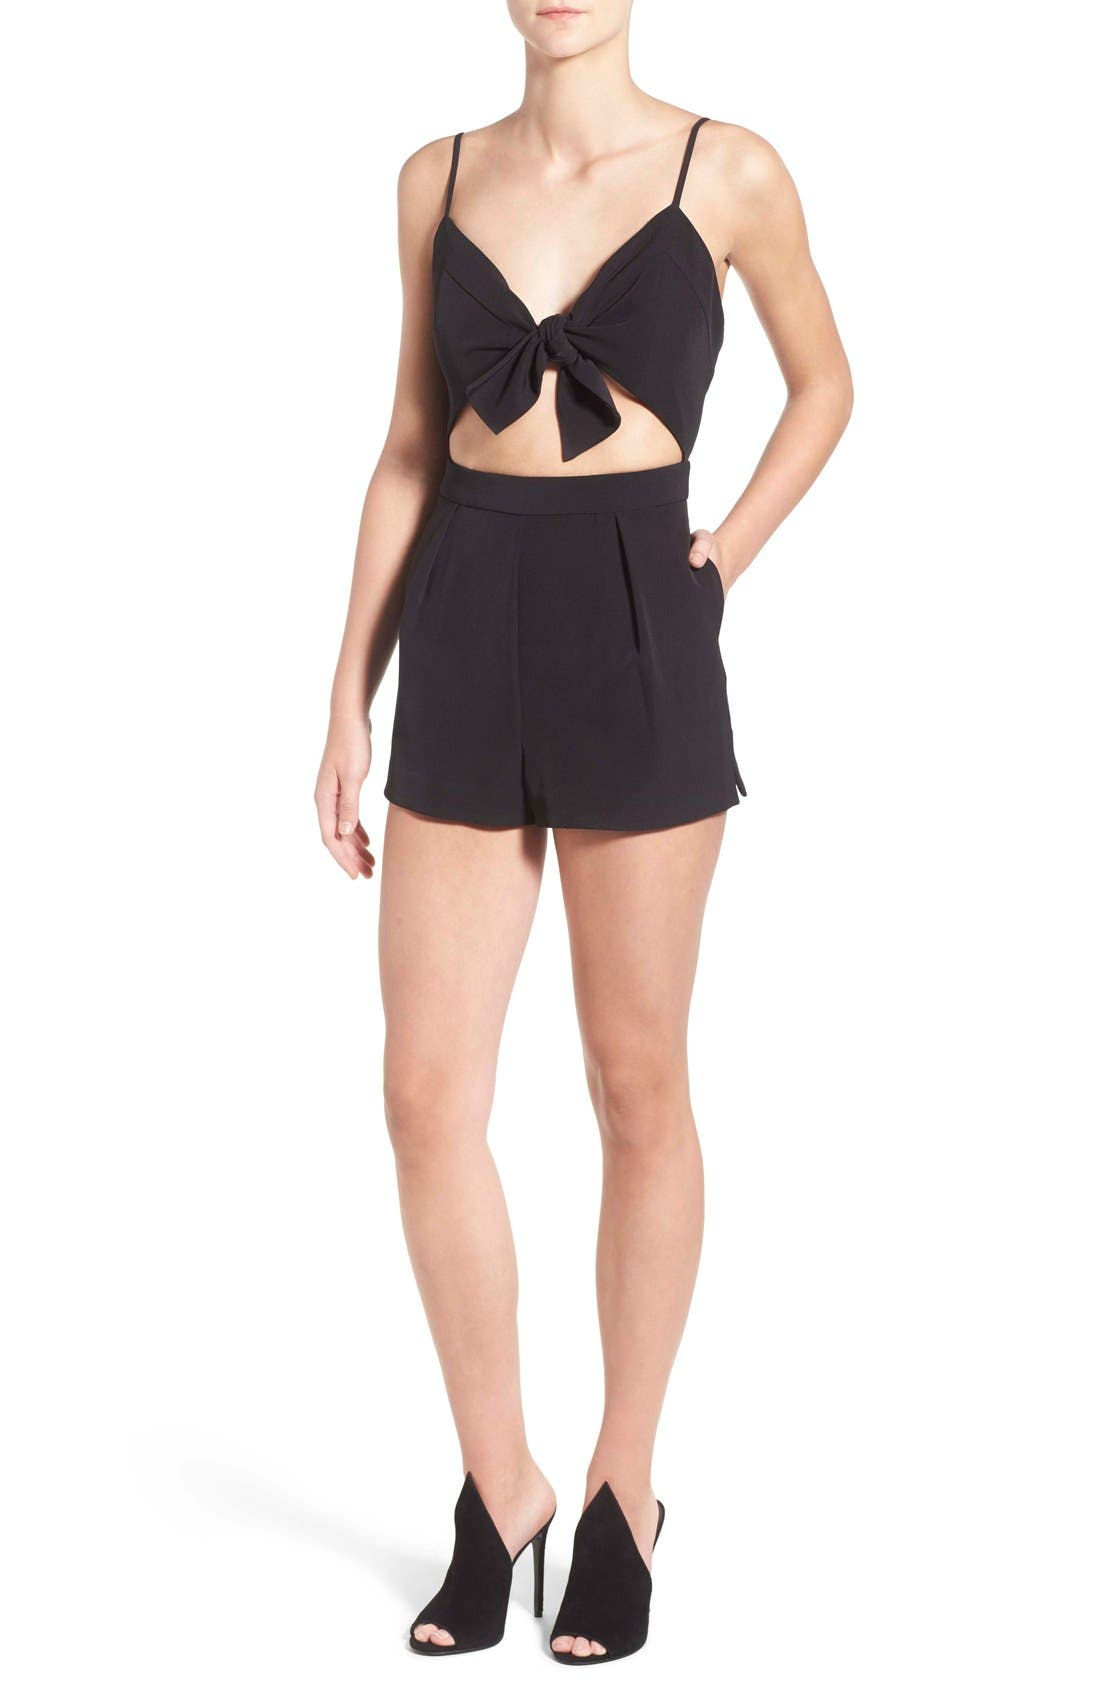 Alternate Image 1 Selected - KENDALL + KYLIE Tie Front Romper